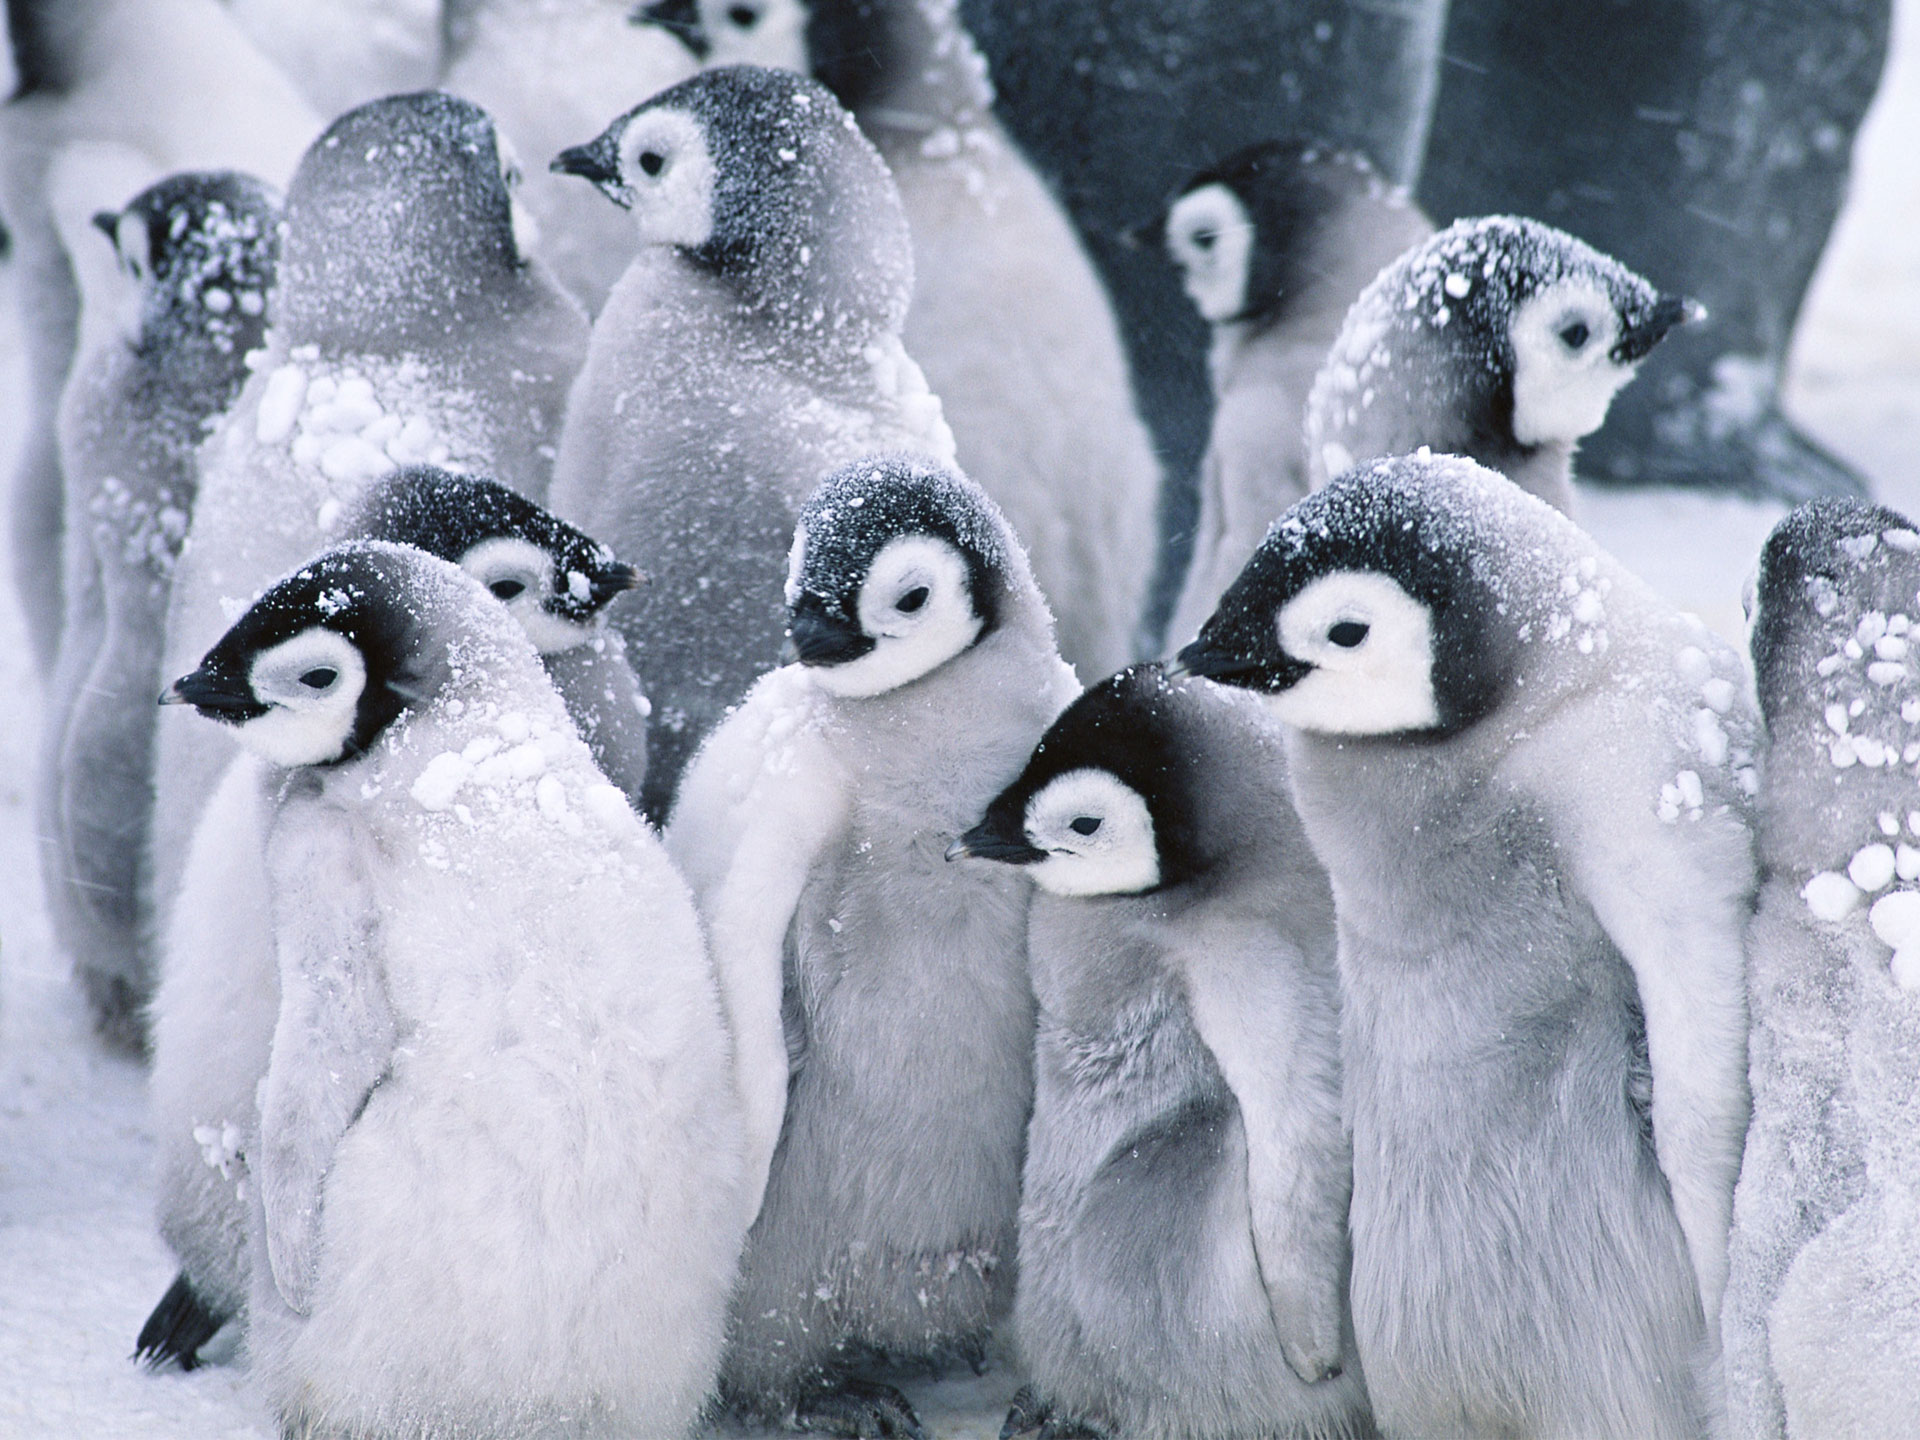 Cute Arctic Penguins 522.06 Kb